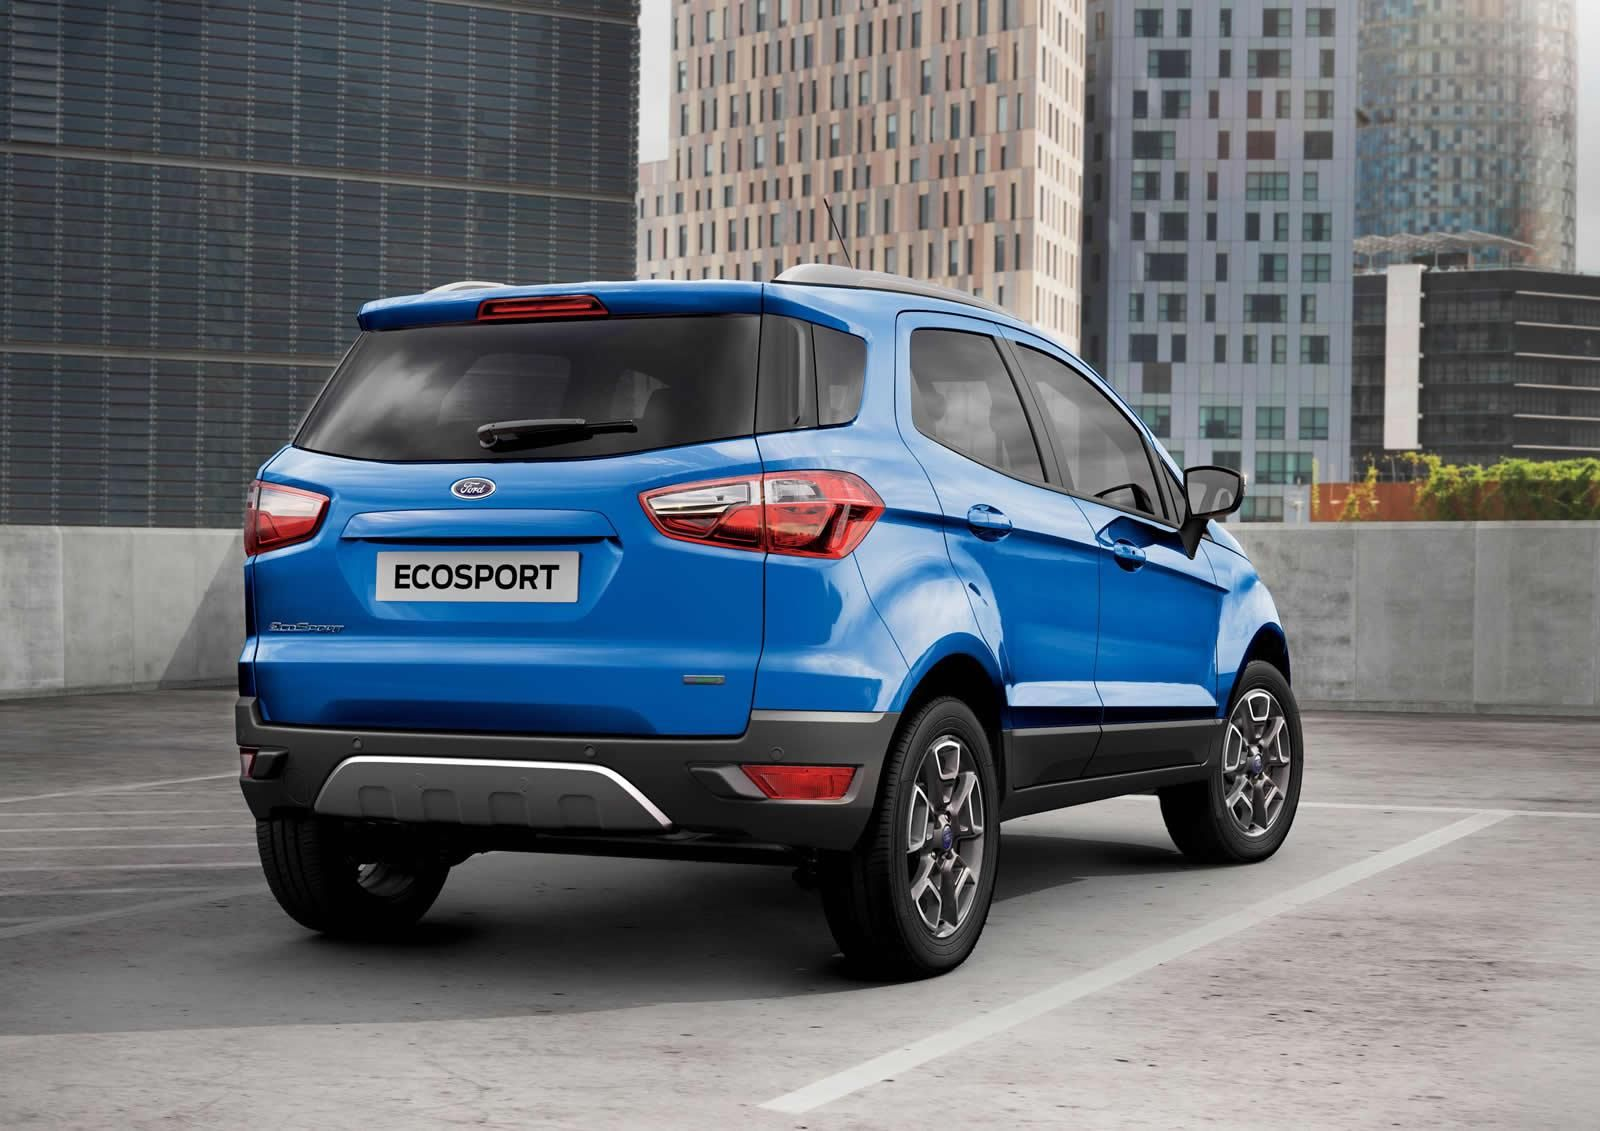 2016 ford ecosport rear press image uk specification